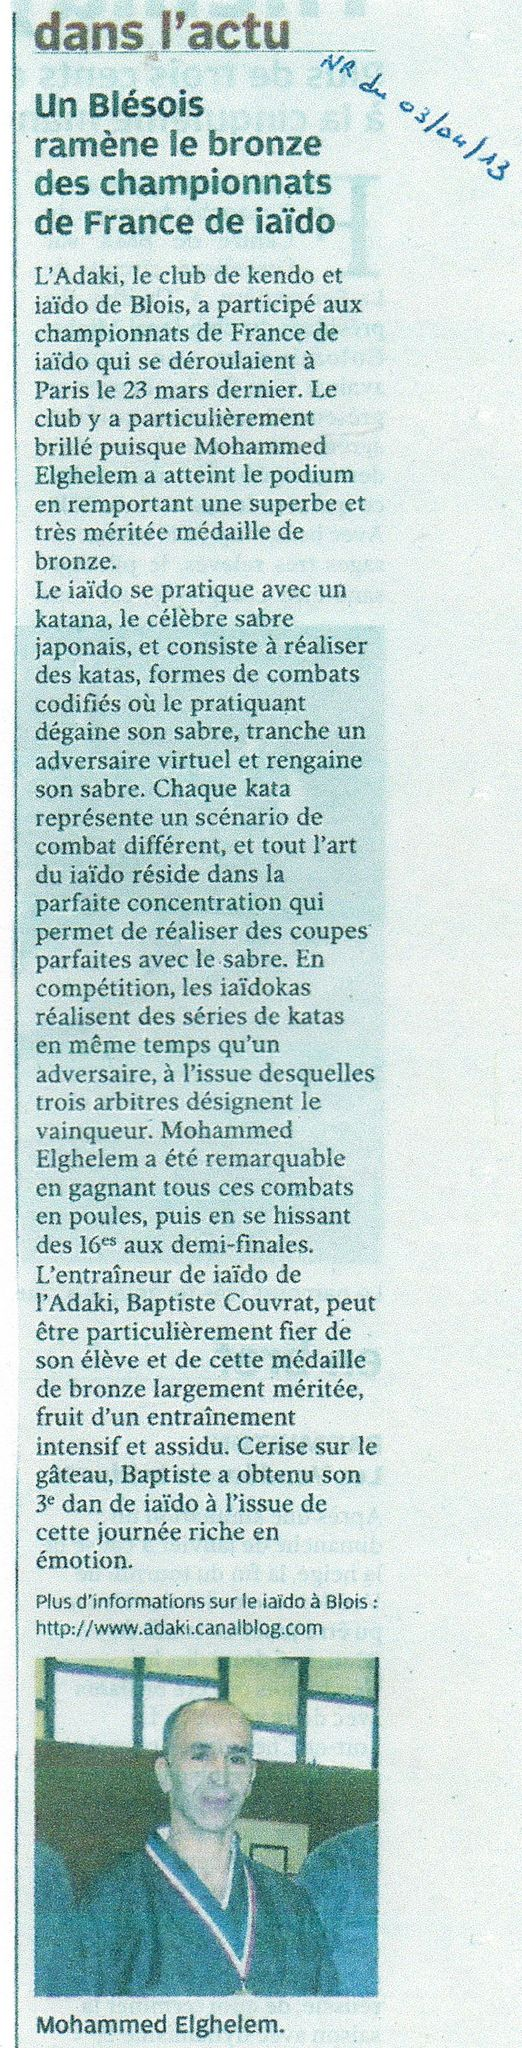 NR-article 03 04 2013-2